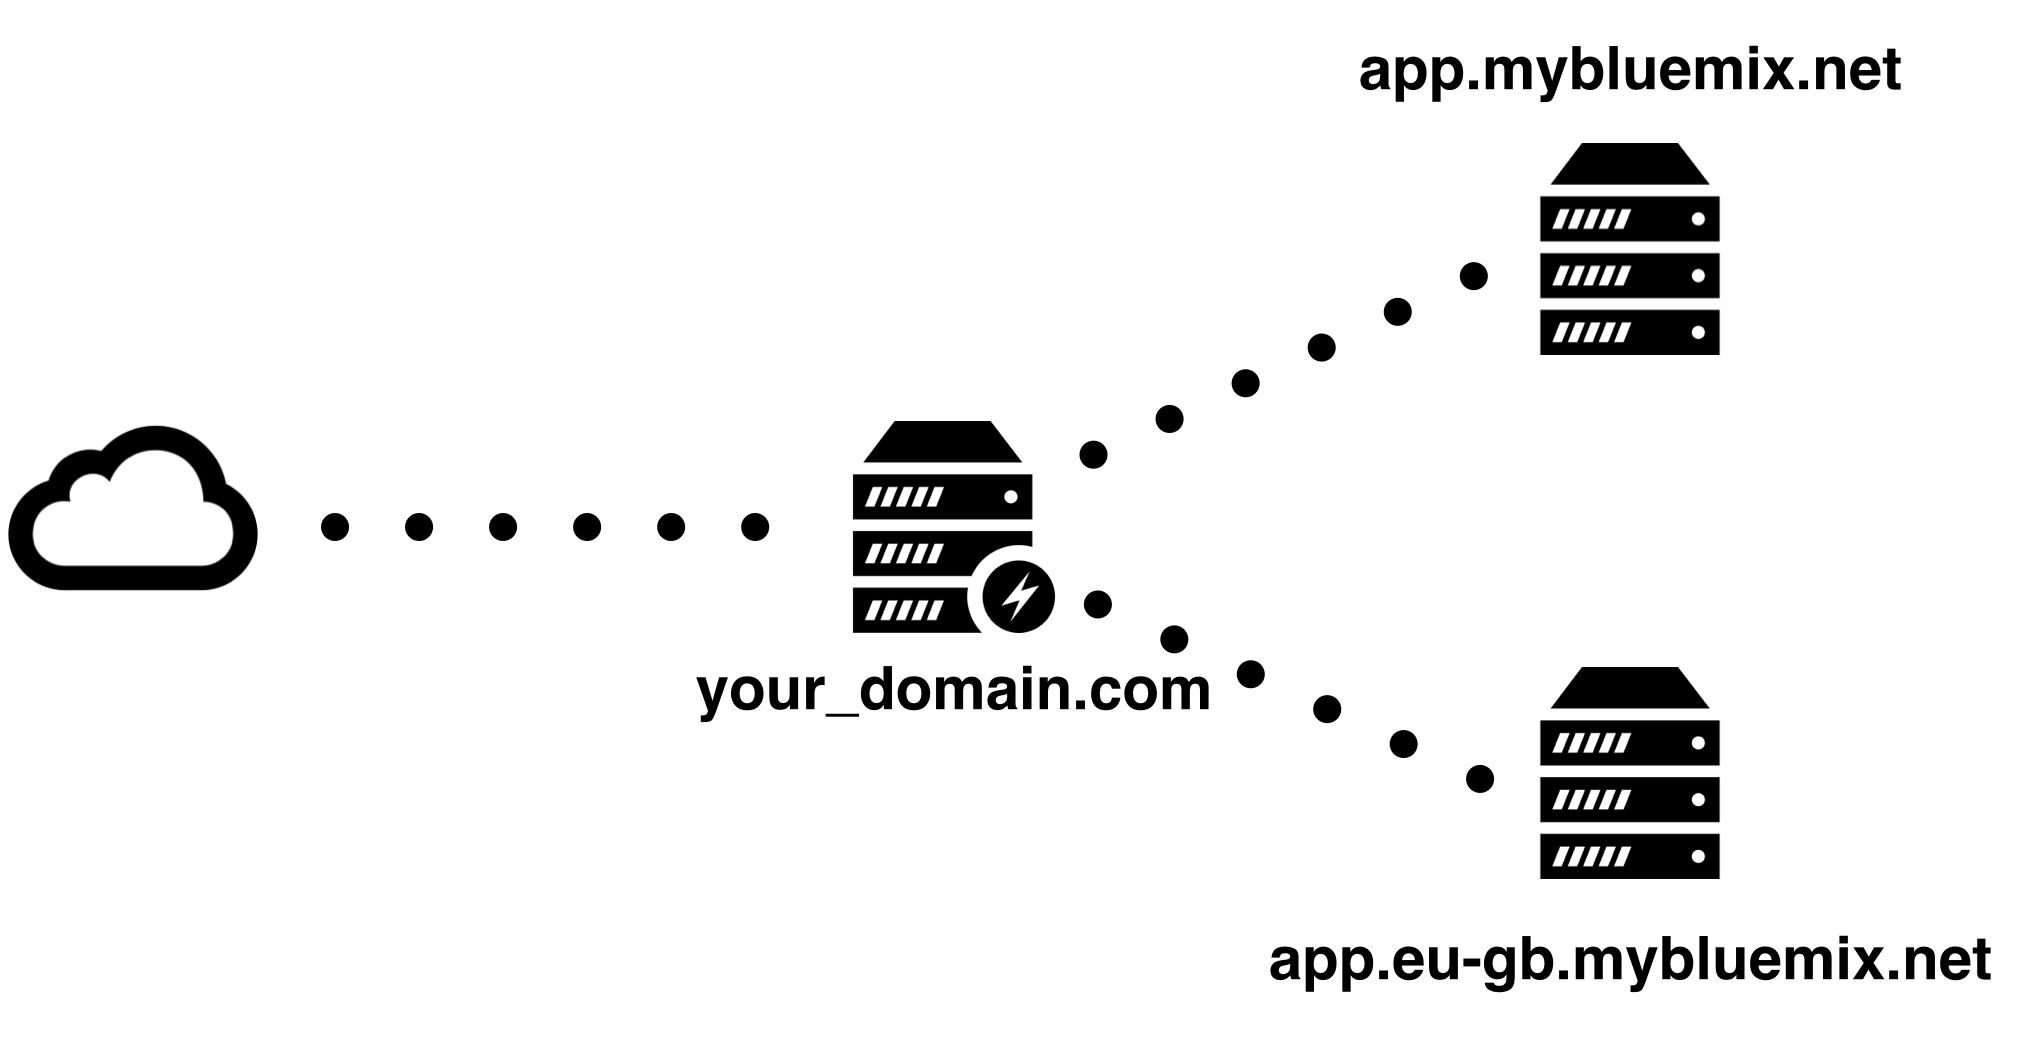 Location Based Cloud Foundry Applications Using Nginx And